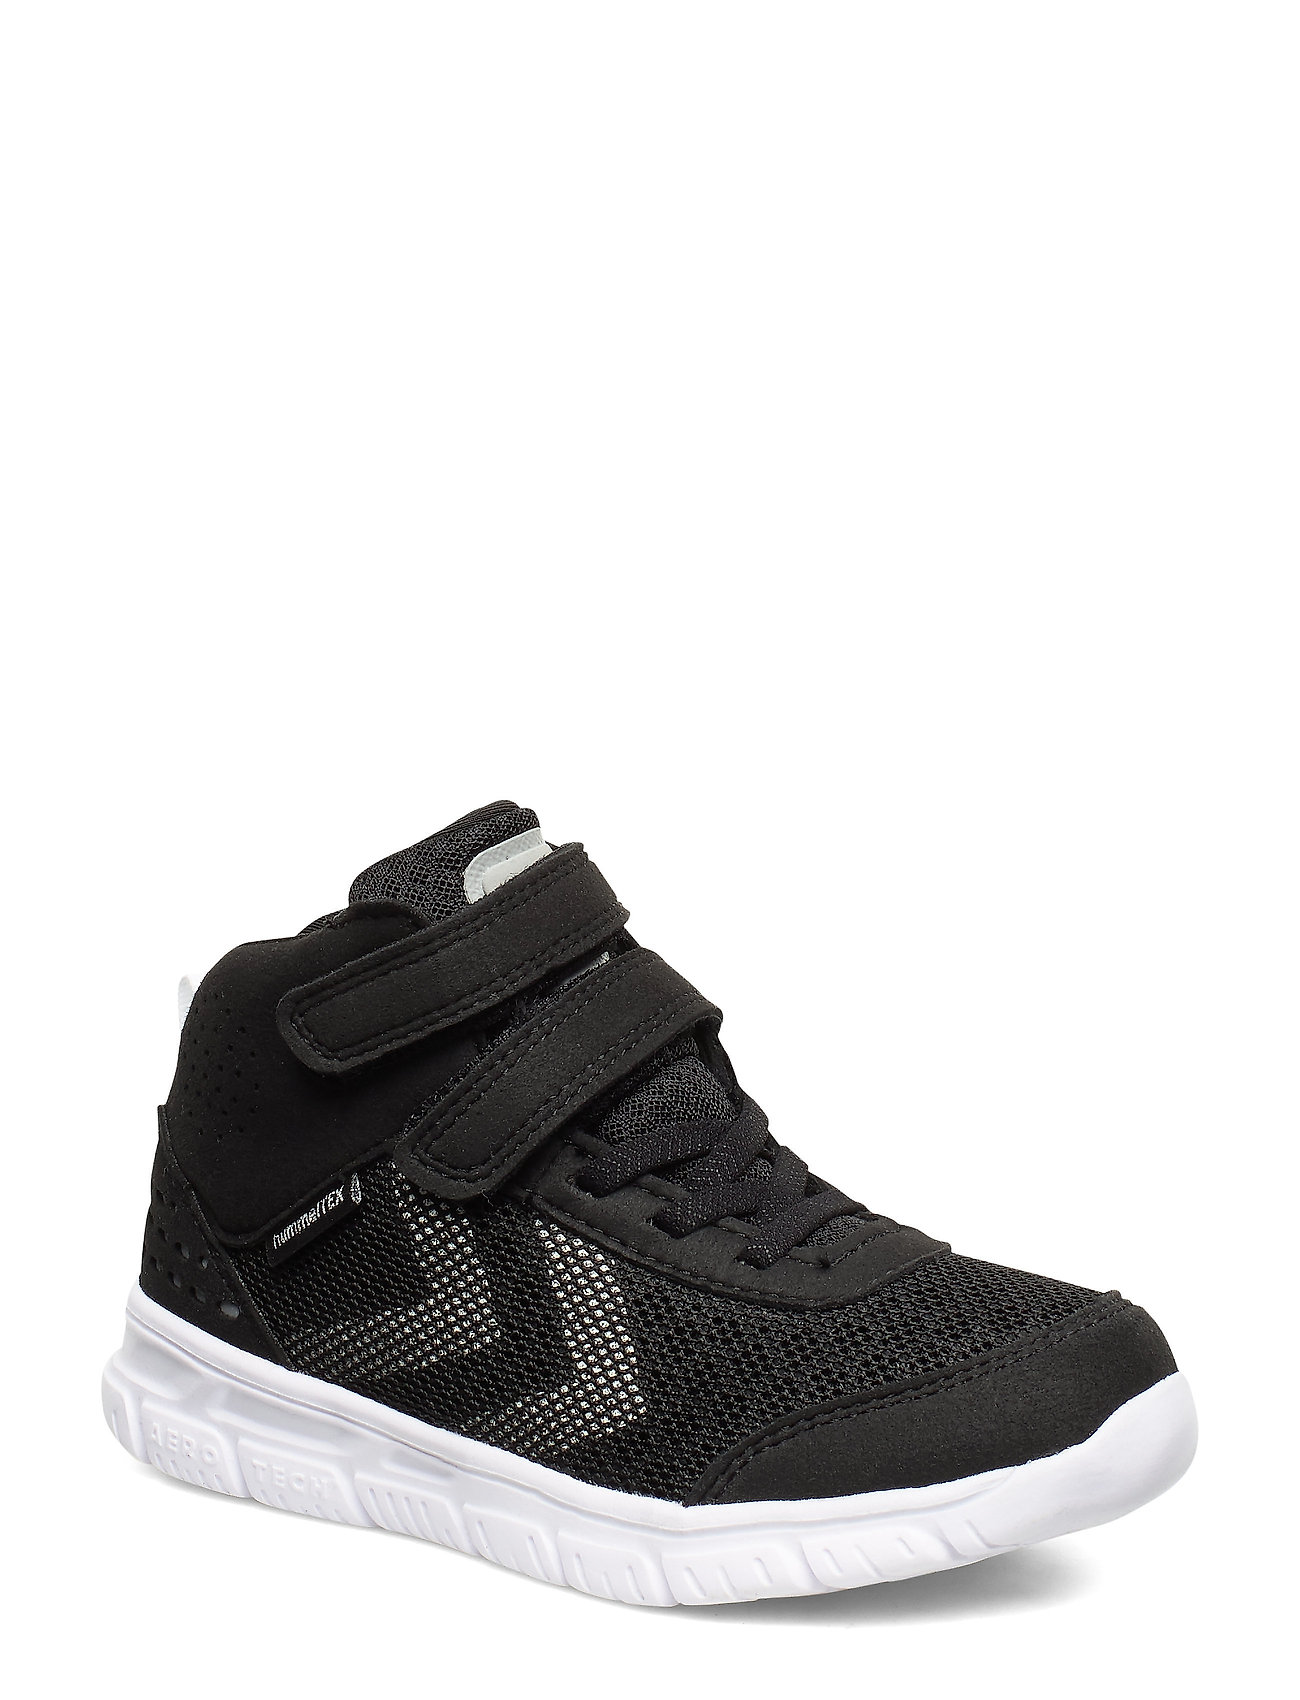 Hummel CROSSLITE MID TEX JR - BLACK